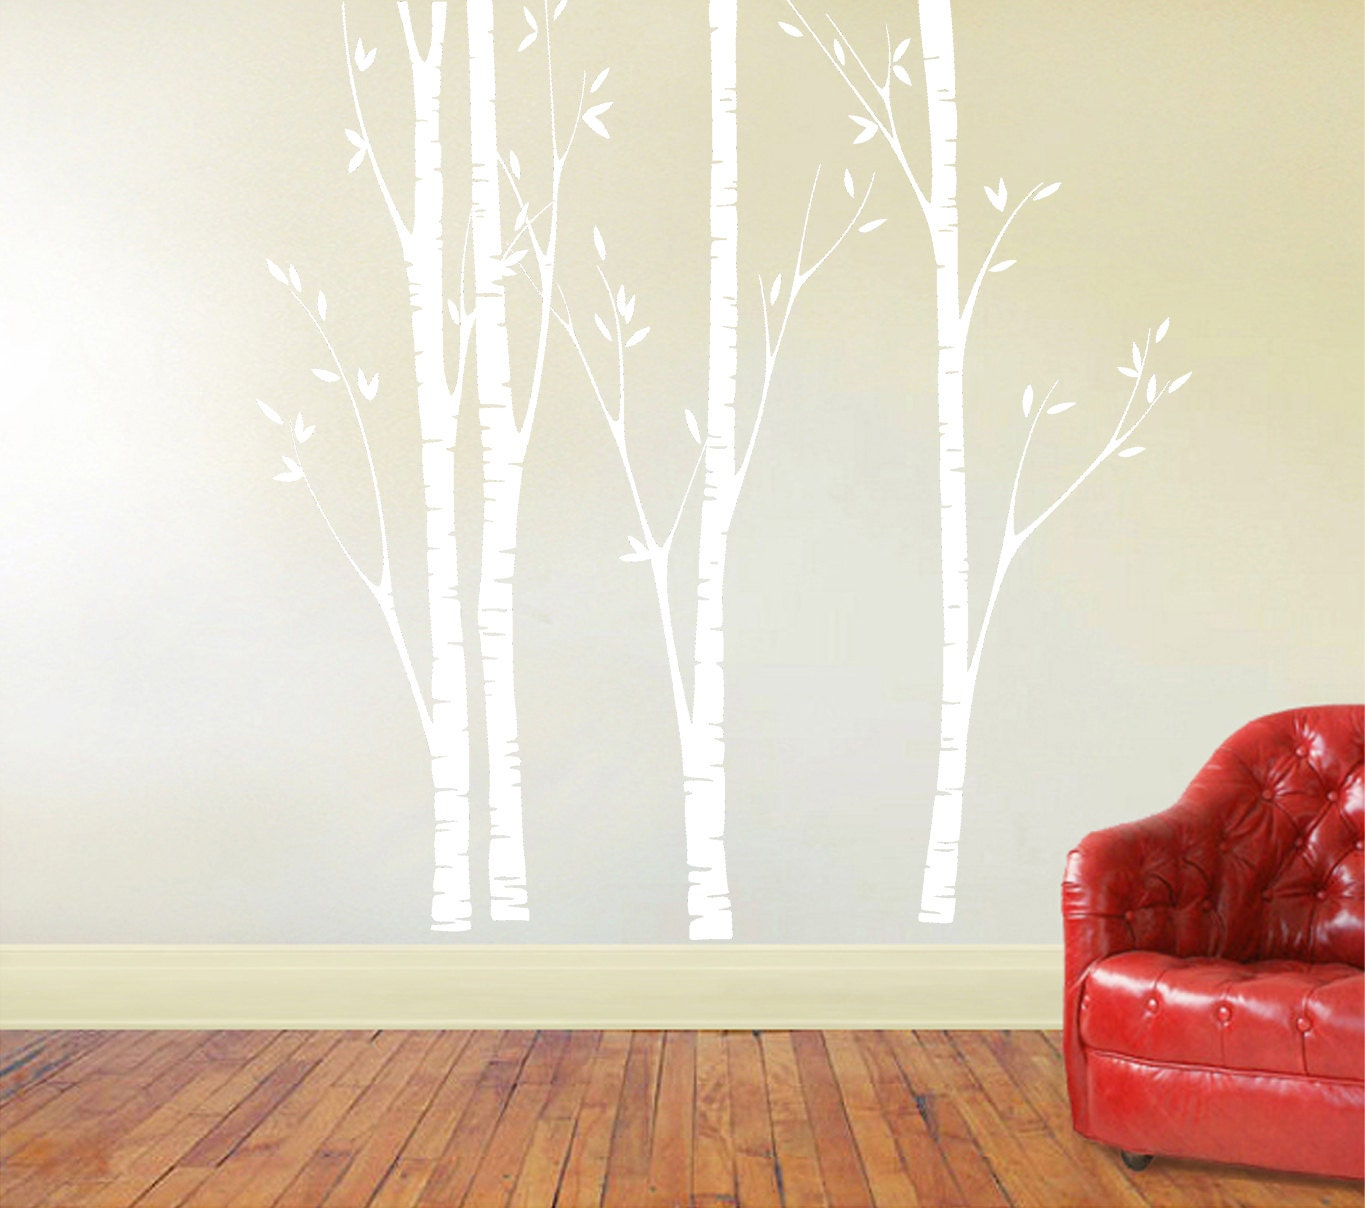 Birch tree decal nursery birch decal tree wall decal four description this vinyl decal features 4 individual birch trees amipublicfo Choice Image